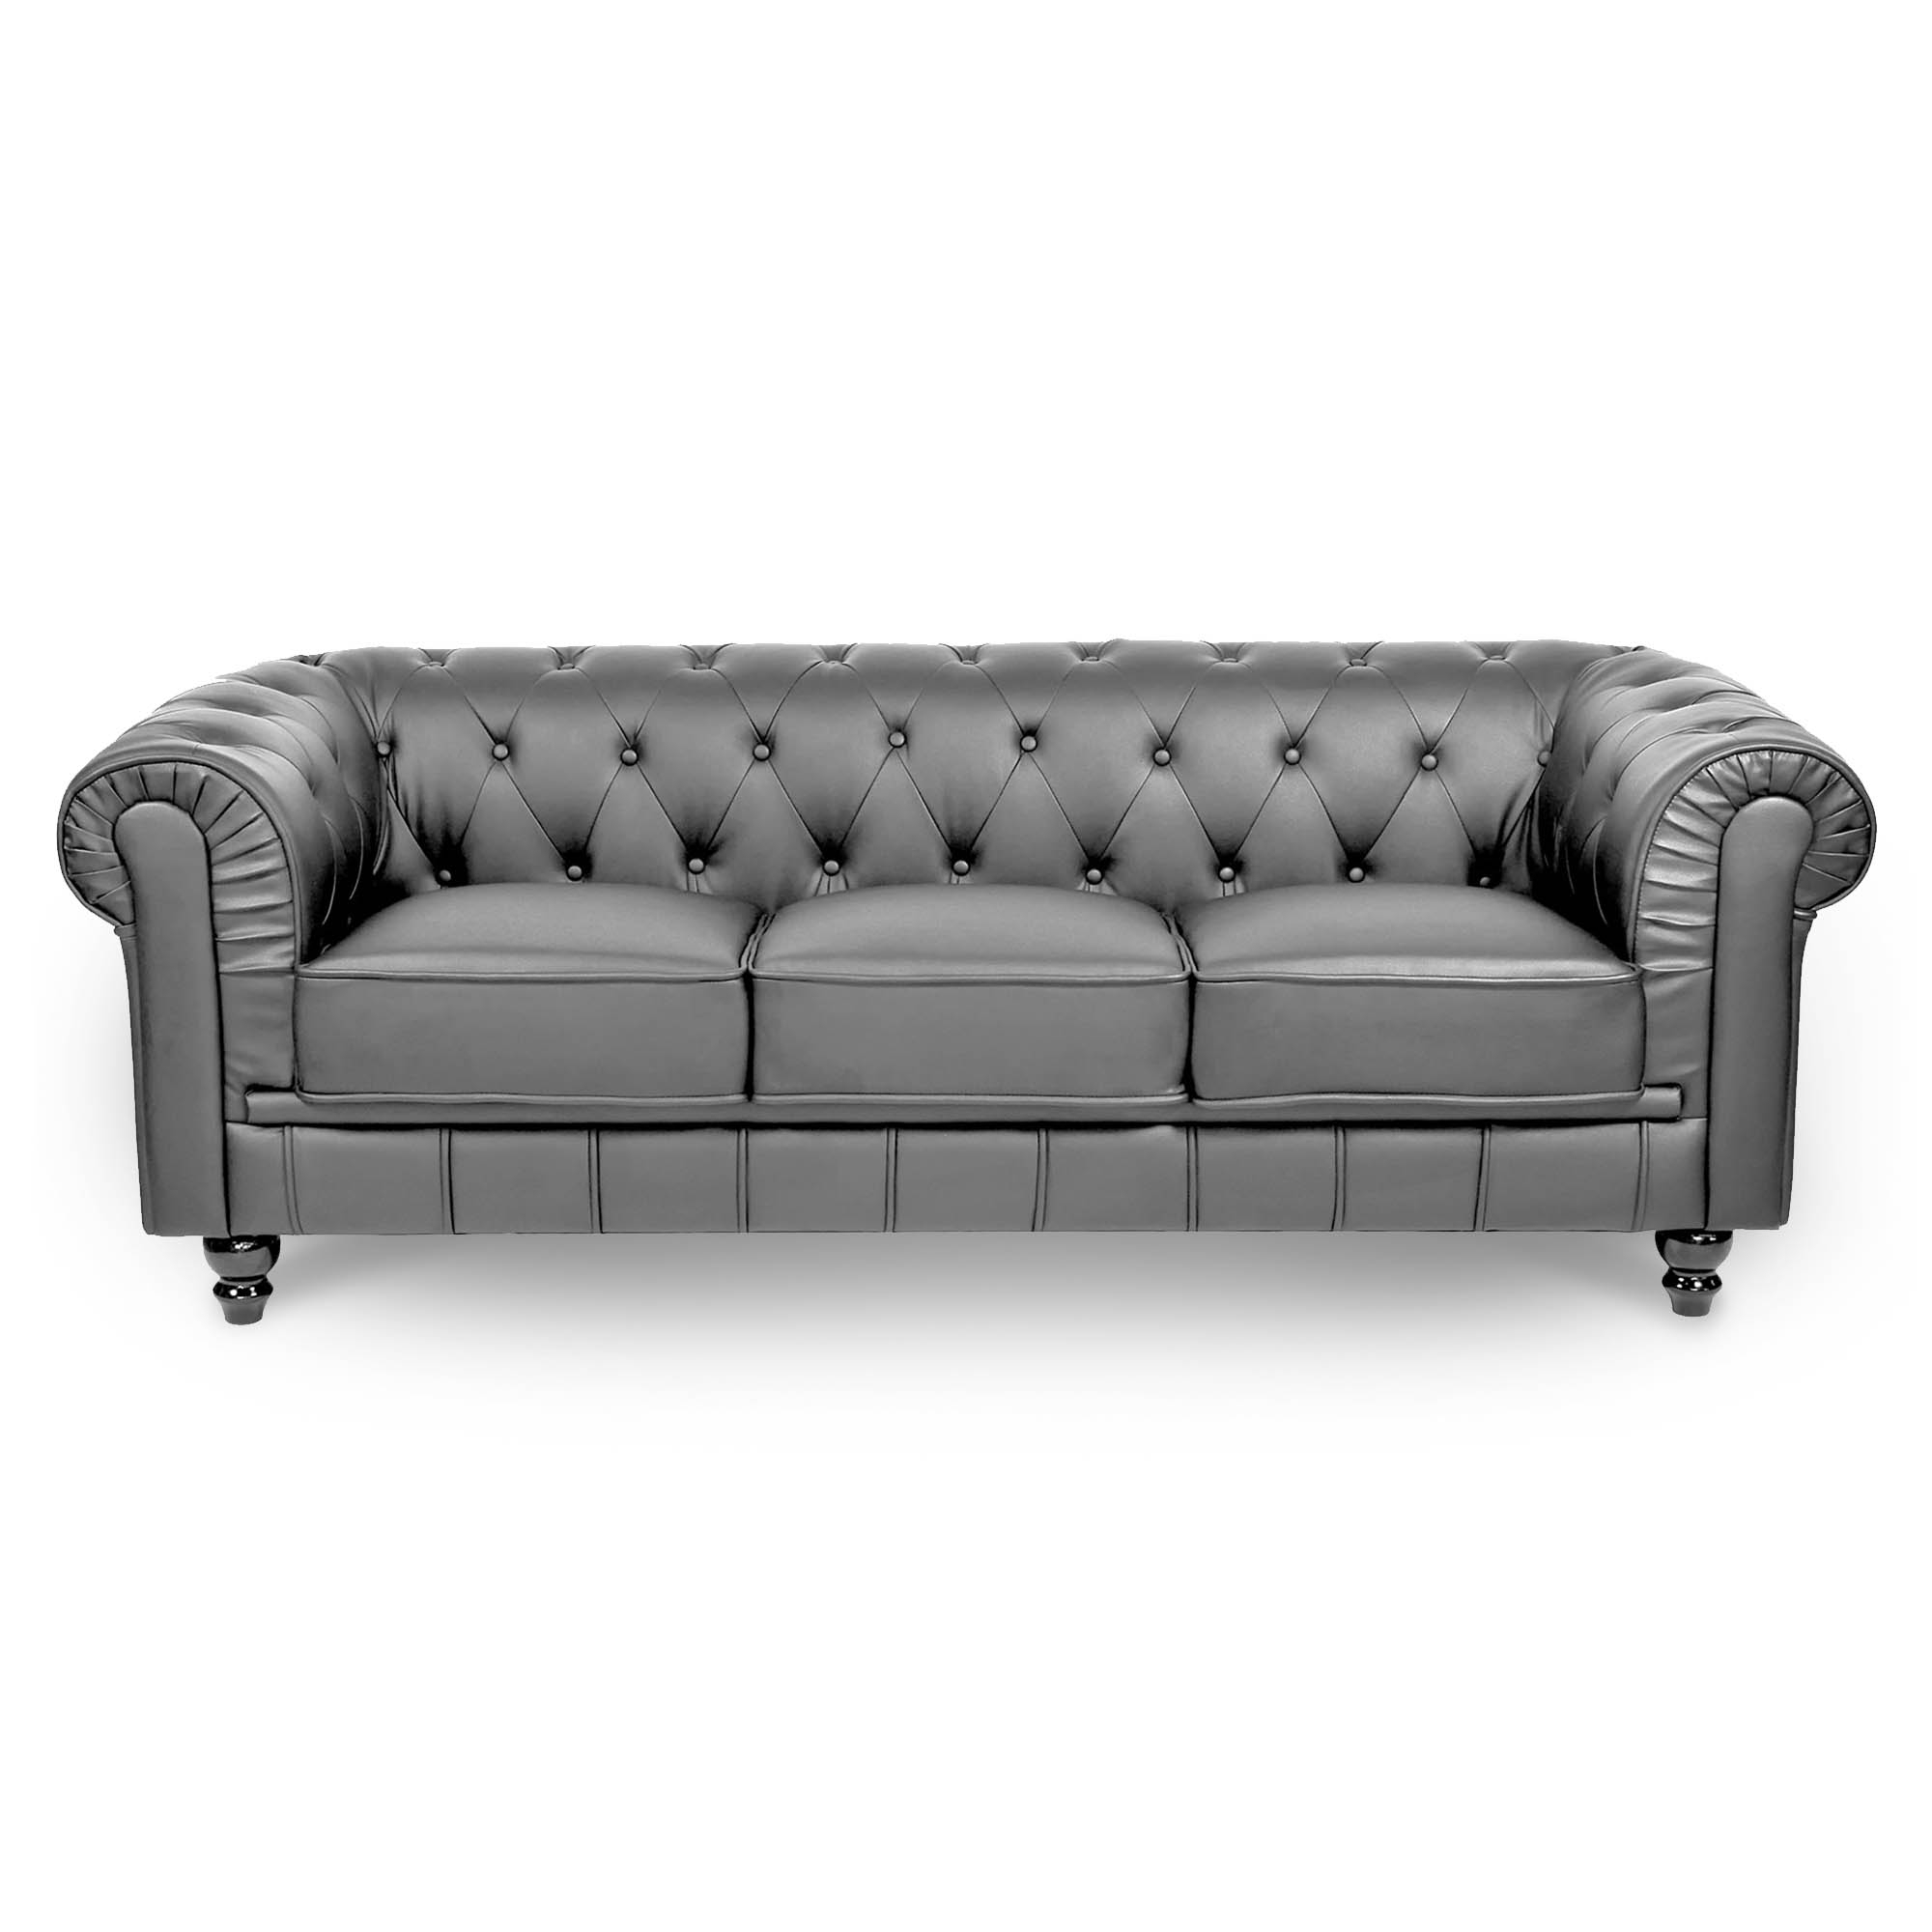 DECO IN PARIS Canape 3 places gris chesterfield can